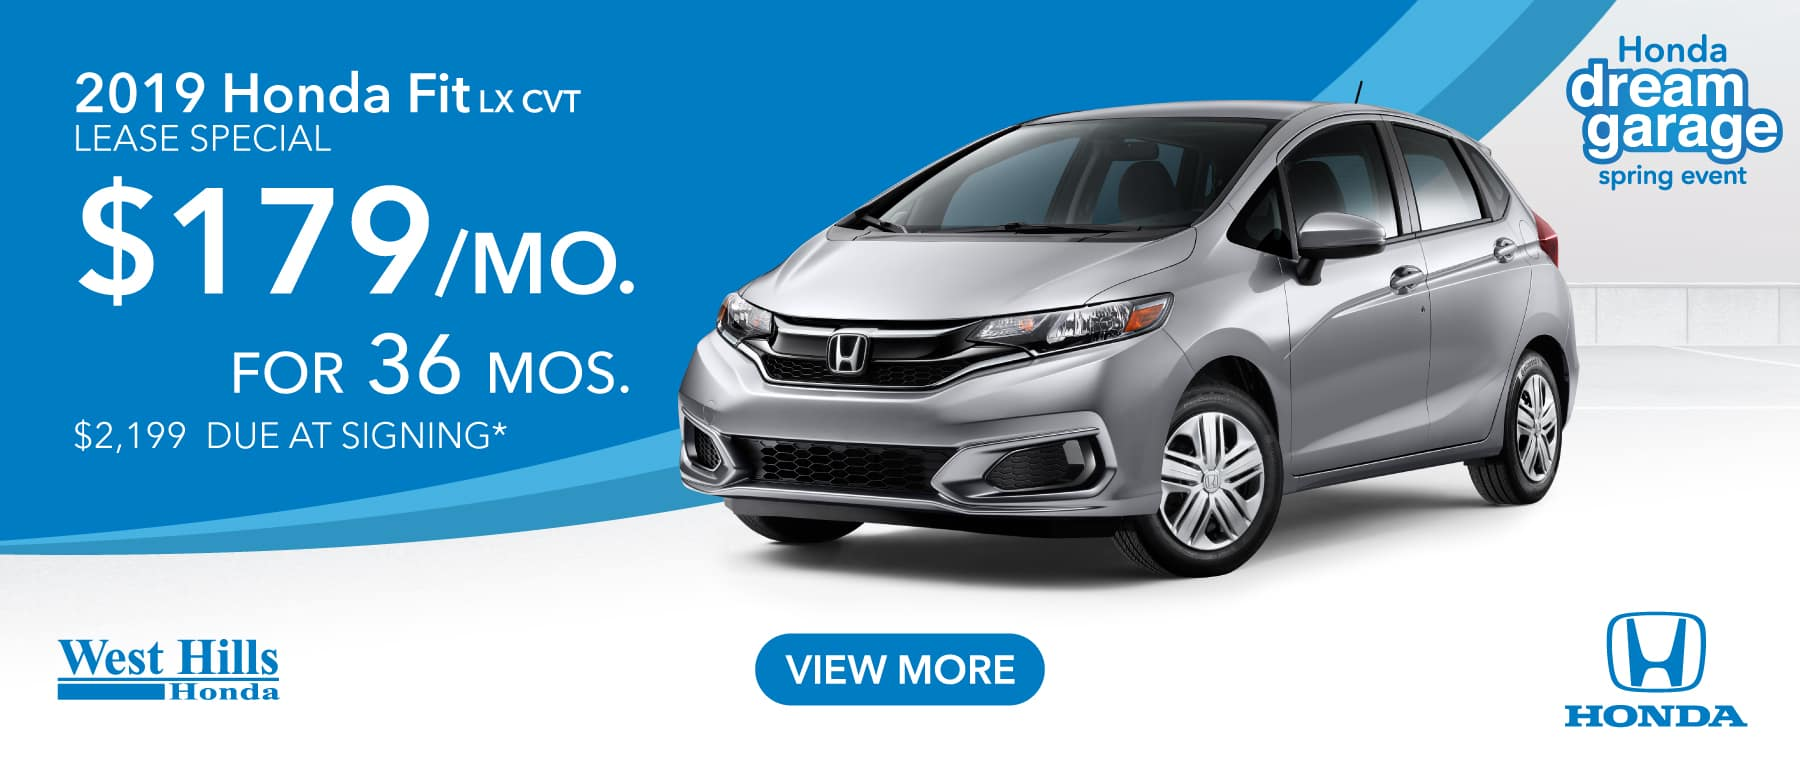 2019 Honda Fit LX CVT $179/mo. for 36 mos. $2,199 due at signing*    *Valid on 2019 Honda Fit LX CVT. $179 per mo. for 36 months. Lease with $2,199 due at signing; includes a $595 acquisition fee. Valid on VIN: 3HGGK5H41KM723547, 3HGGK5H43KM711450, 3HGGK5H41KM711446. MSRP starting at $17,885. No Security deposit required. Subject to credit approval. 36 monthly payments required. Not all lessees will qualify for lowest payment through participating lender. Residency restrictions apply. Lessee responsible for maintenance, excessive wear/tear and mileage over 12,000 miles per year at $0.15/mile. Option to purchase at lease end. Excludes state and local taxes, tags, registration and title, insurance and dealer charges. A negotiable dealer documentary service fee of up to $150 may be added to the sale price or capitalized cost. Offer expires 3/31/2019.